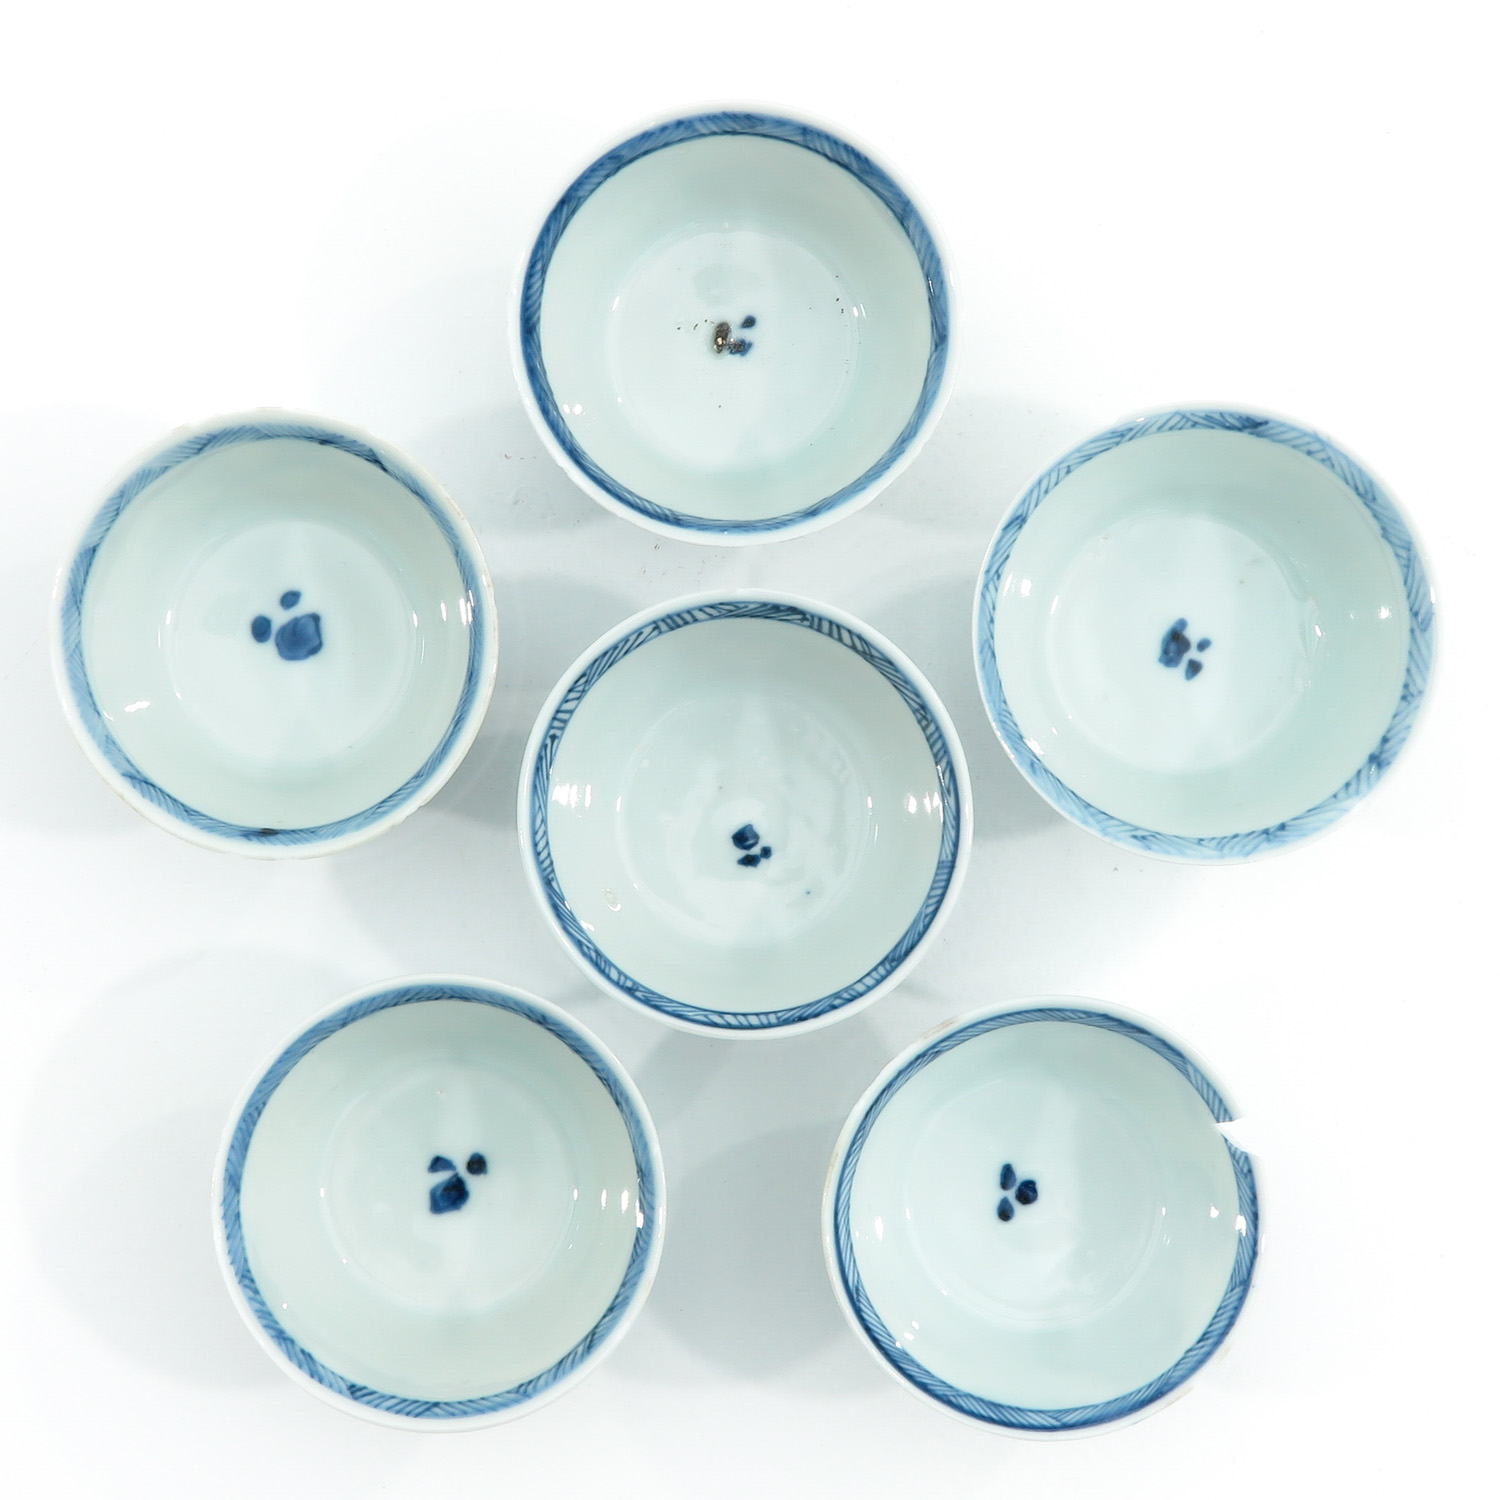 A Series of 6 Blue and White Cups - Image 5 of 9